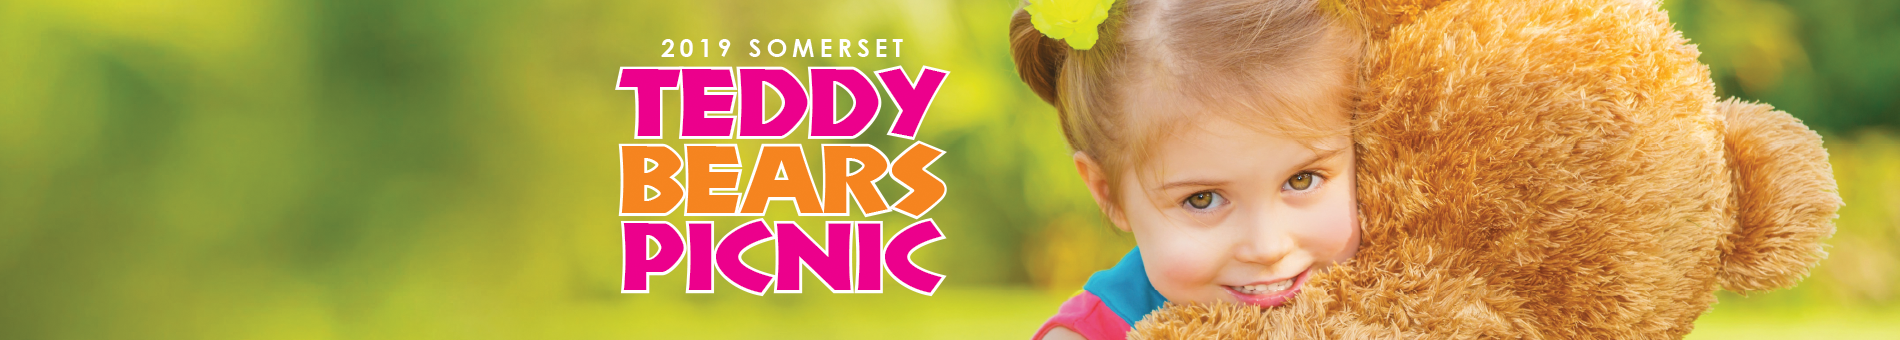 A promo image for Teddy Bear Picnic 2019